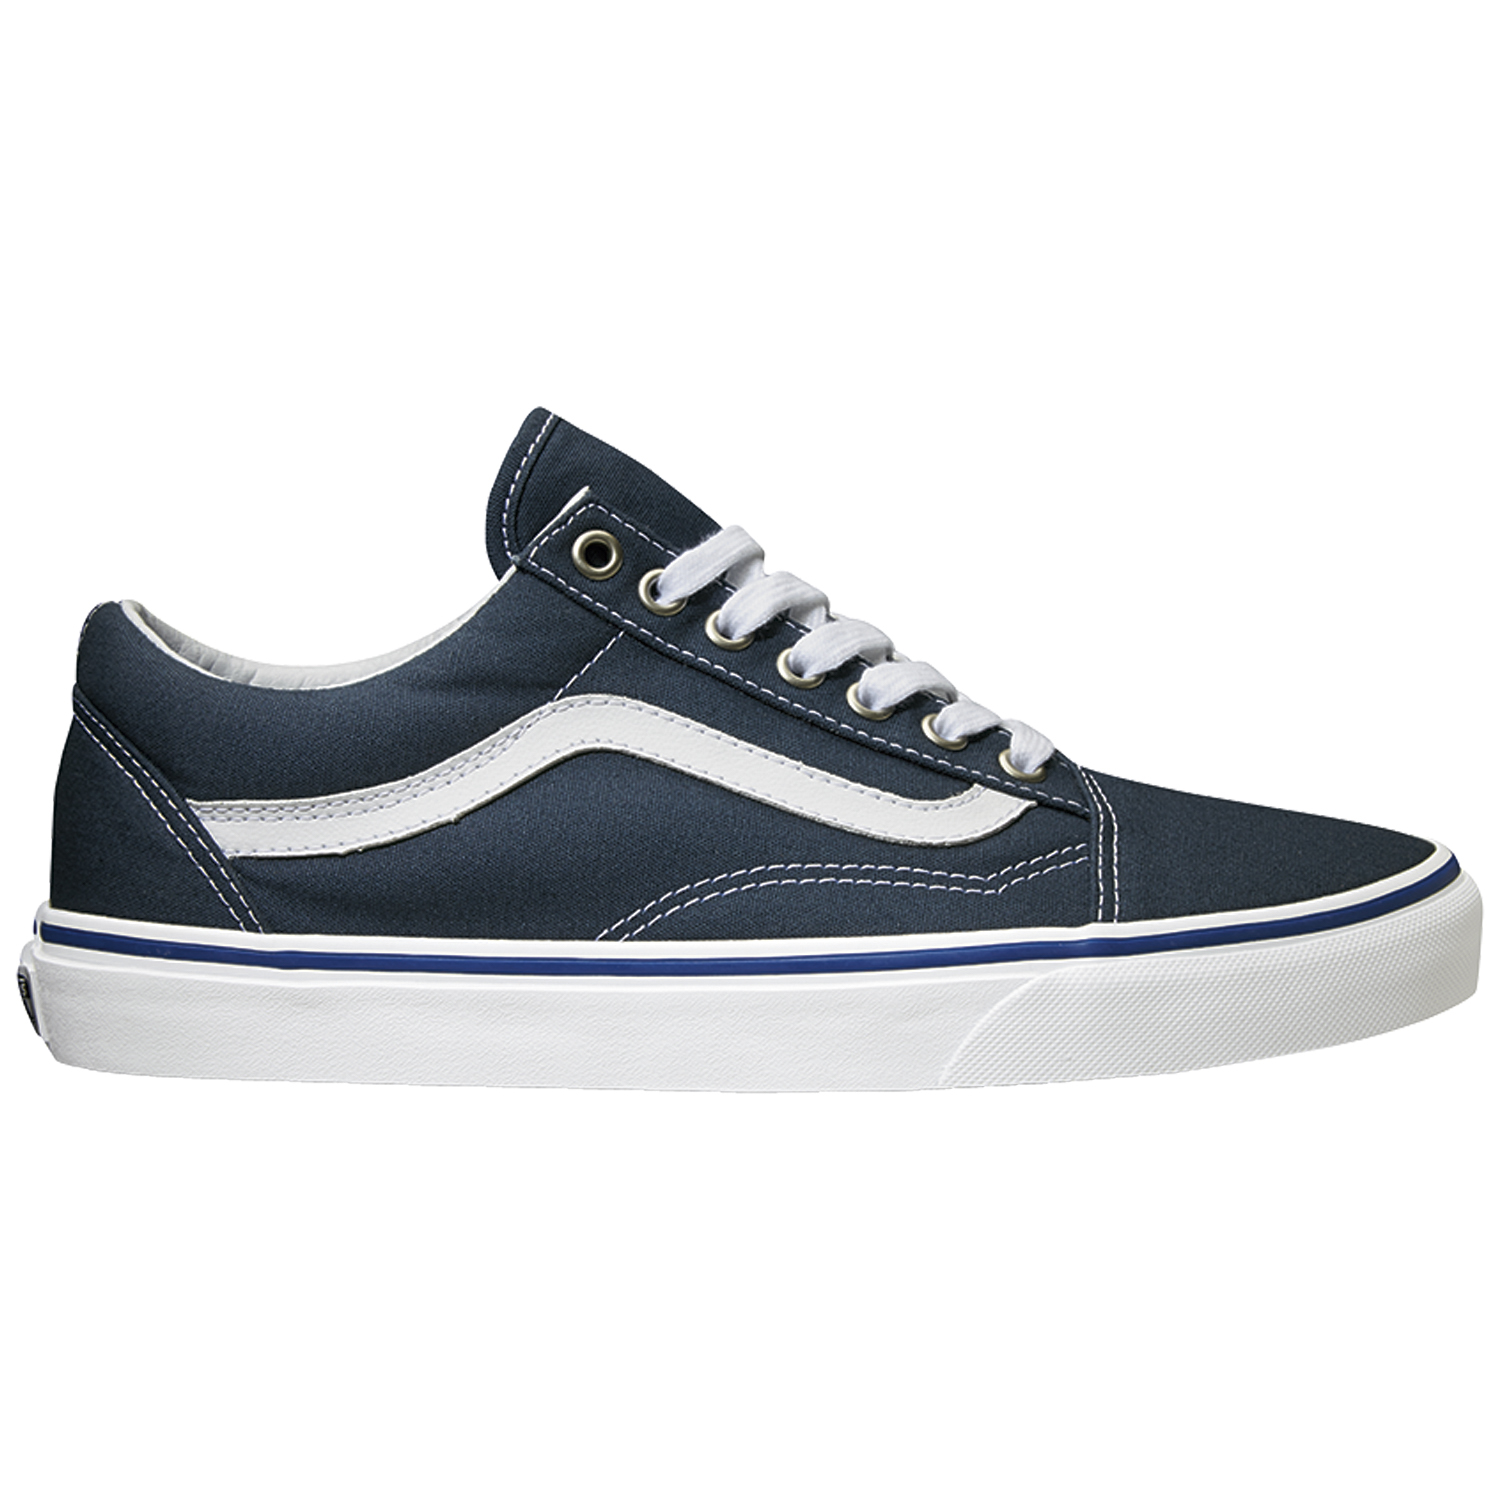 vans-old-skool-midnight-navy-true-white-129-90